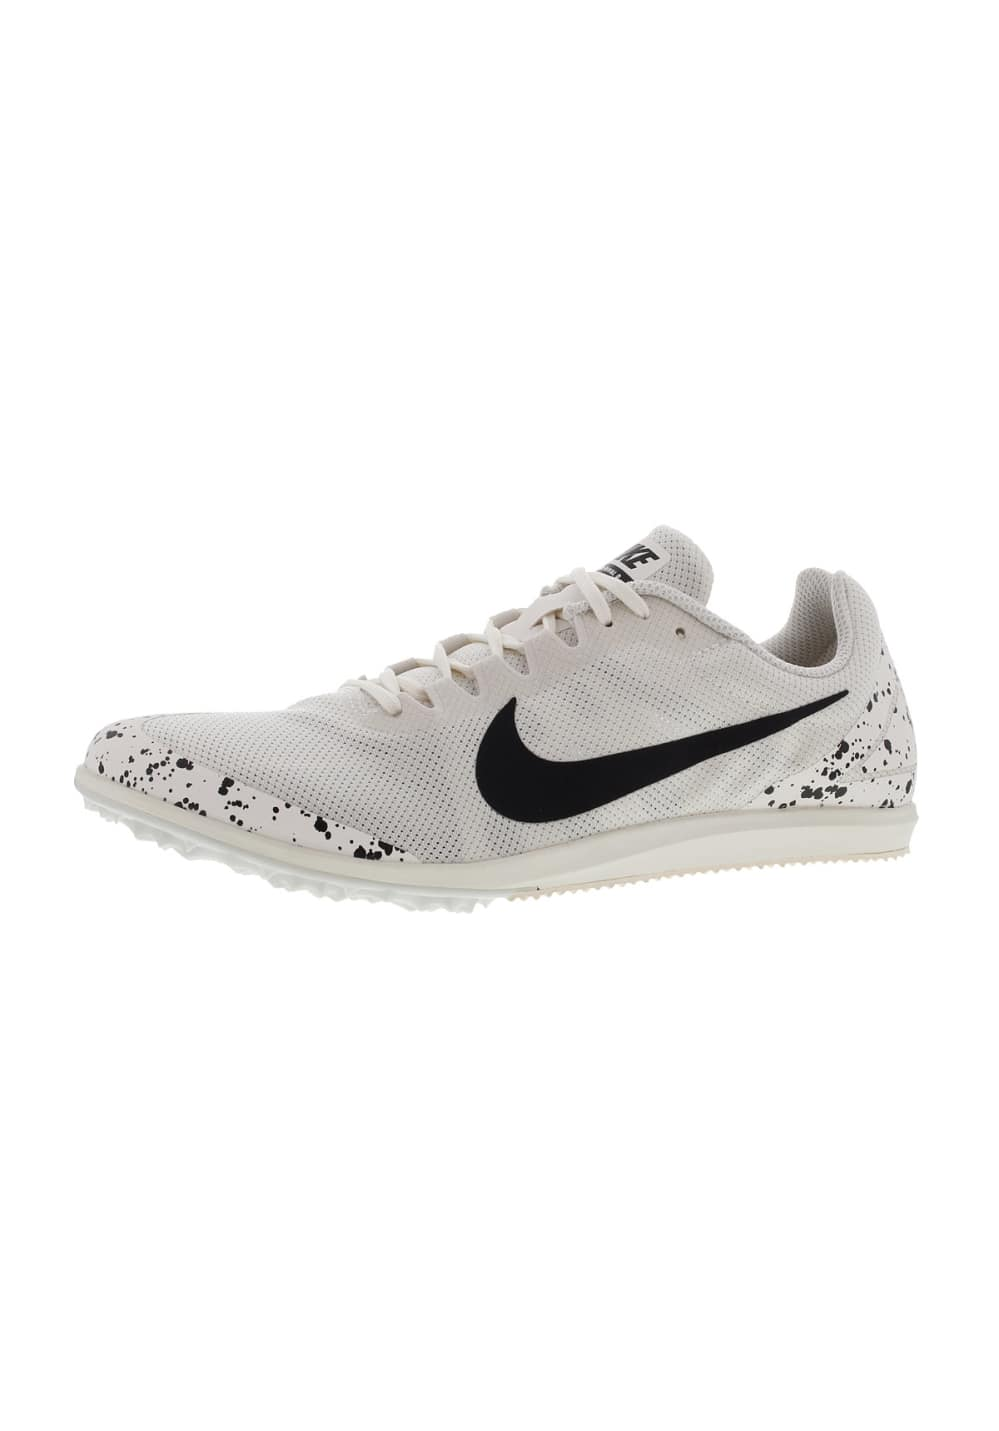 5f84e62f6e8 Next. -60%. This product is currently out of stock. Nike. Zoom Rival D 10 -  Spikes